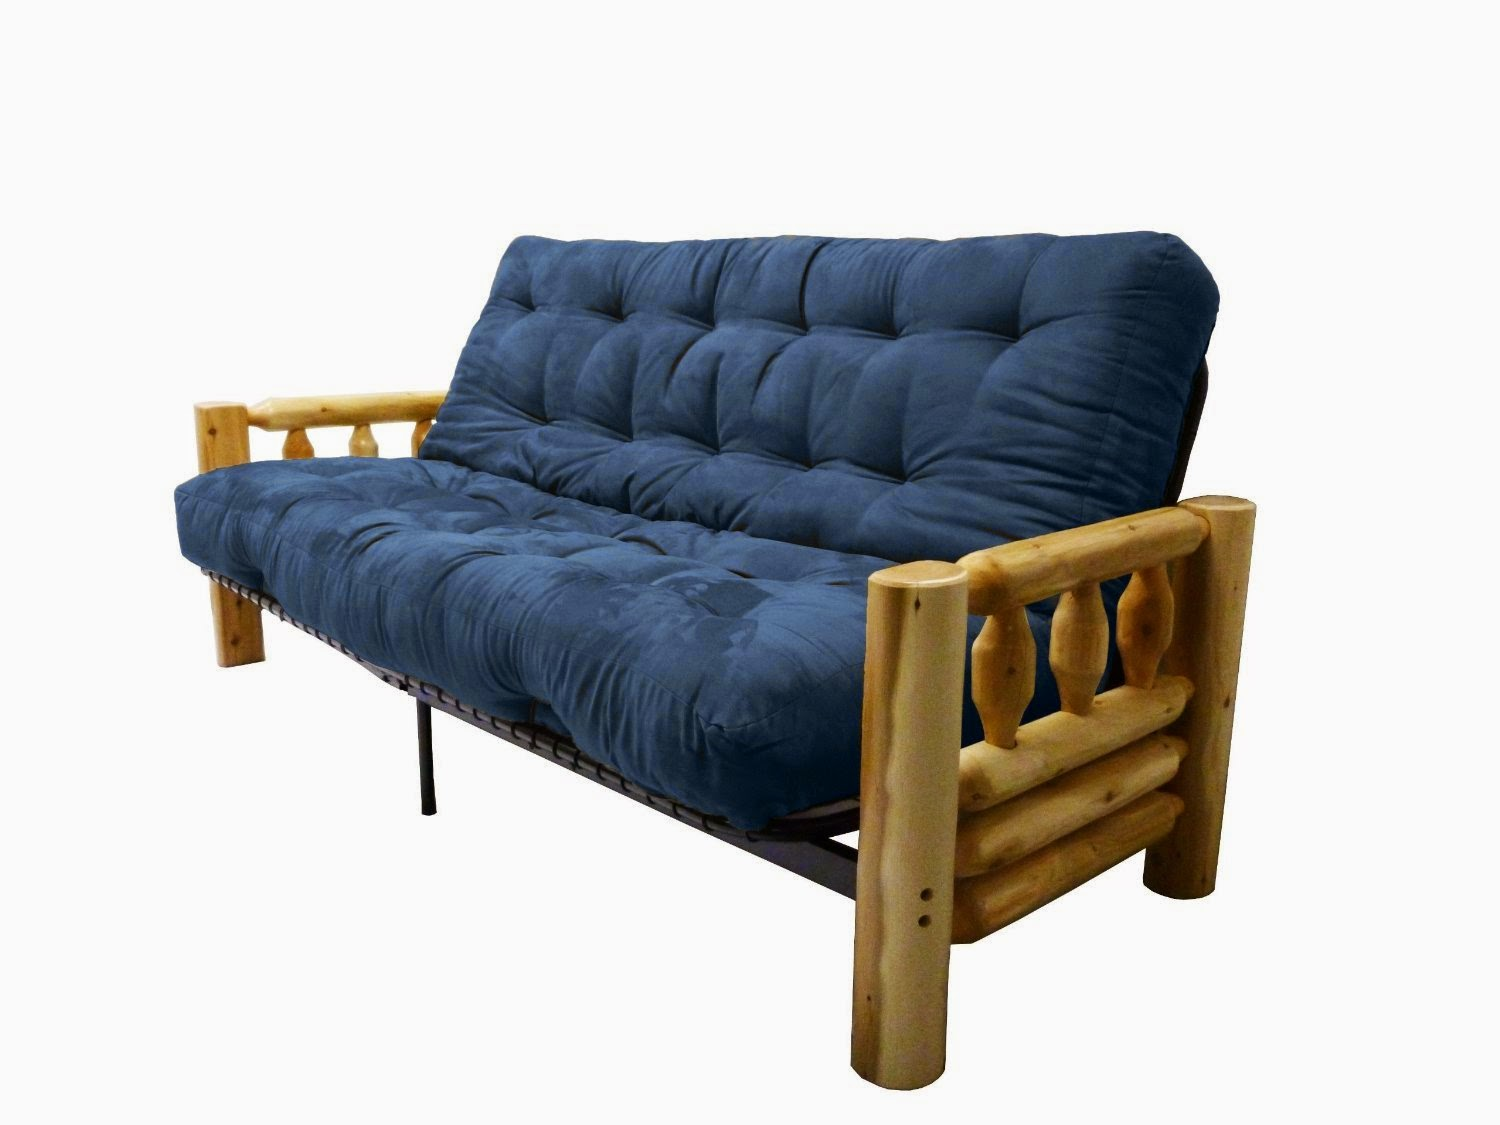 blue couch: dark blue couch